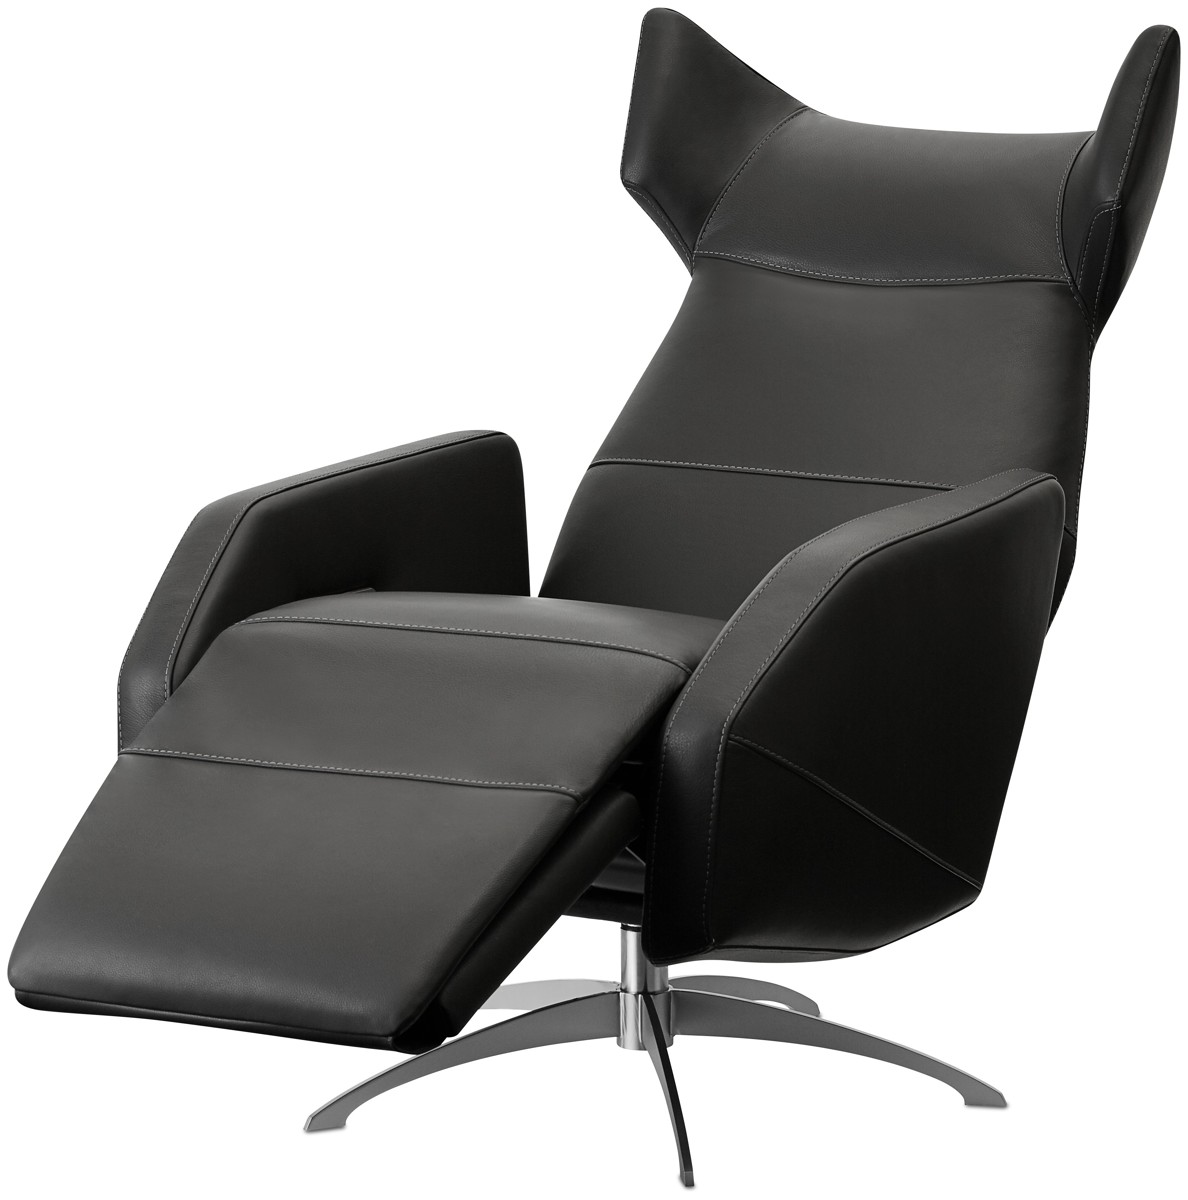 Harvard recliner with battery function, also available with manualelectrical recliner function_Print 150dpi (jpg)_7